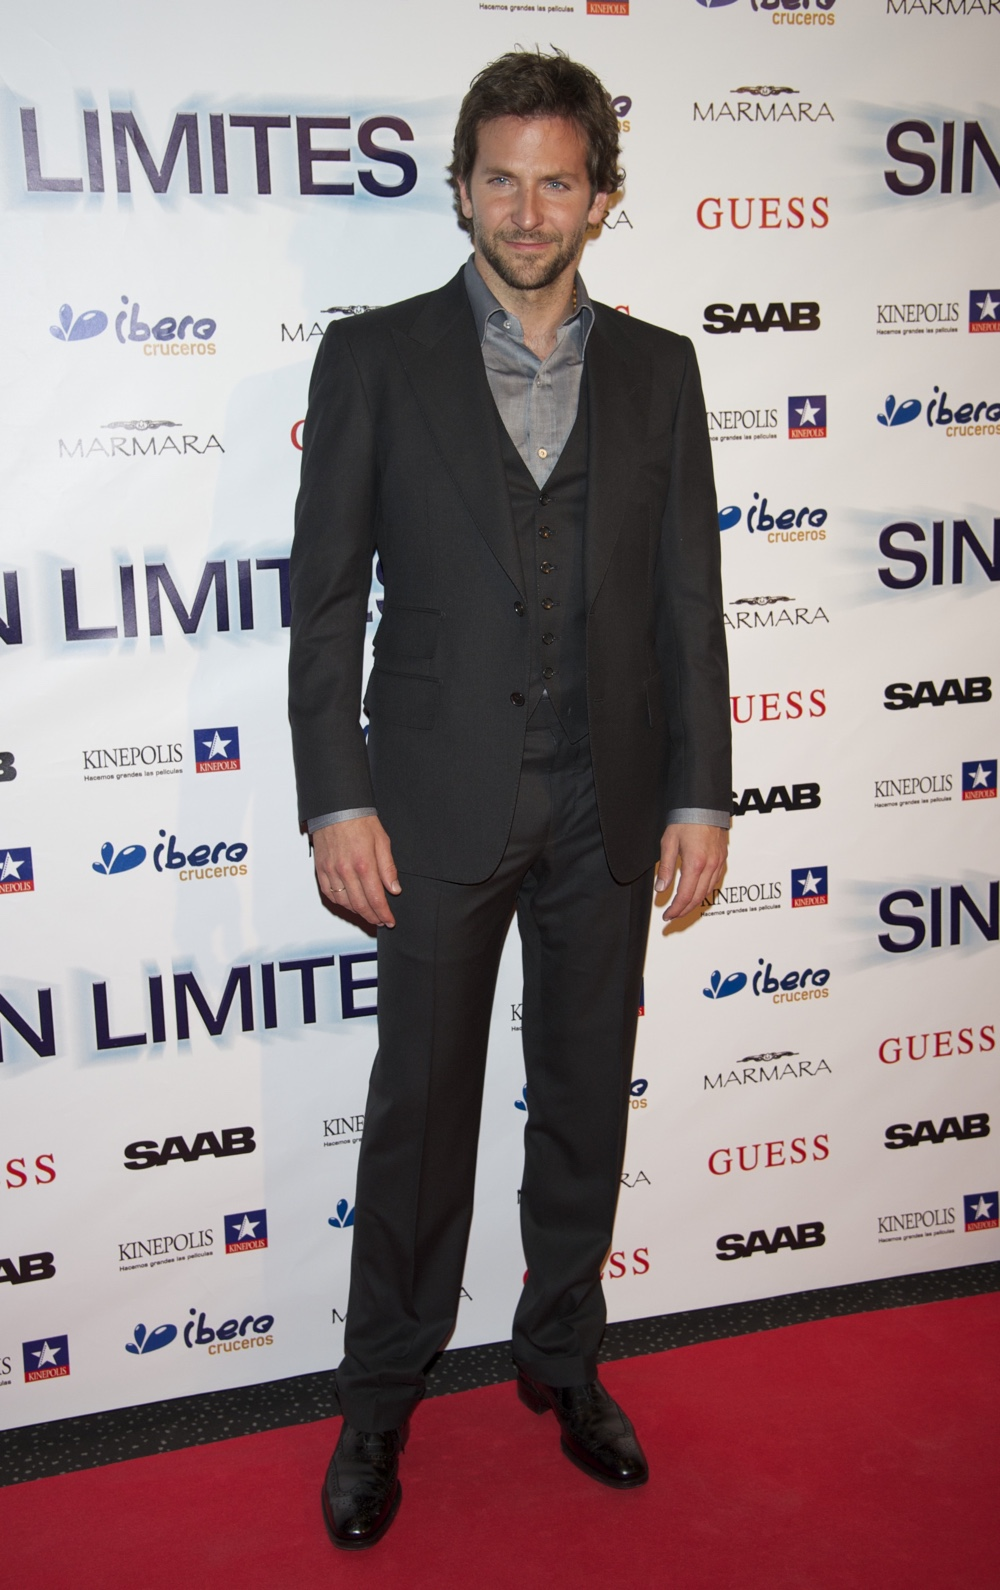 Bradley Cooper attends 'Limitless' Premiere in Madrid